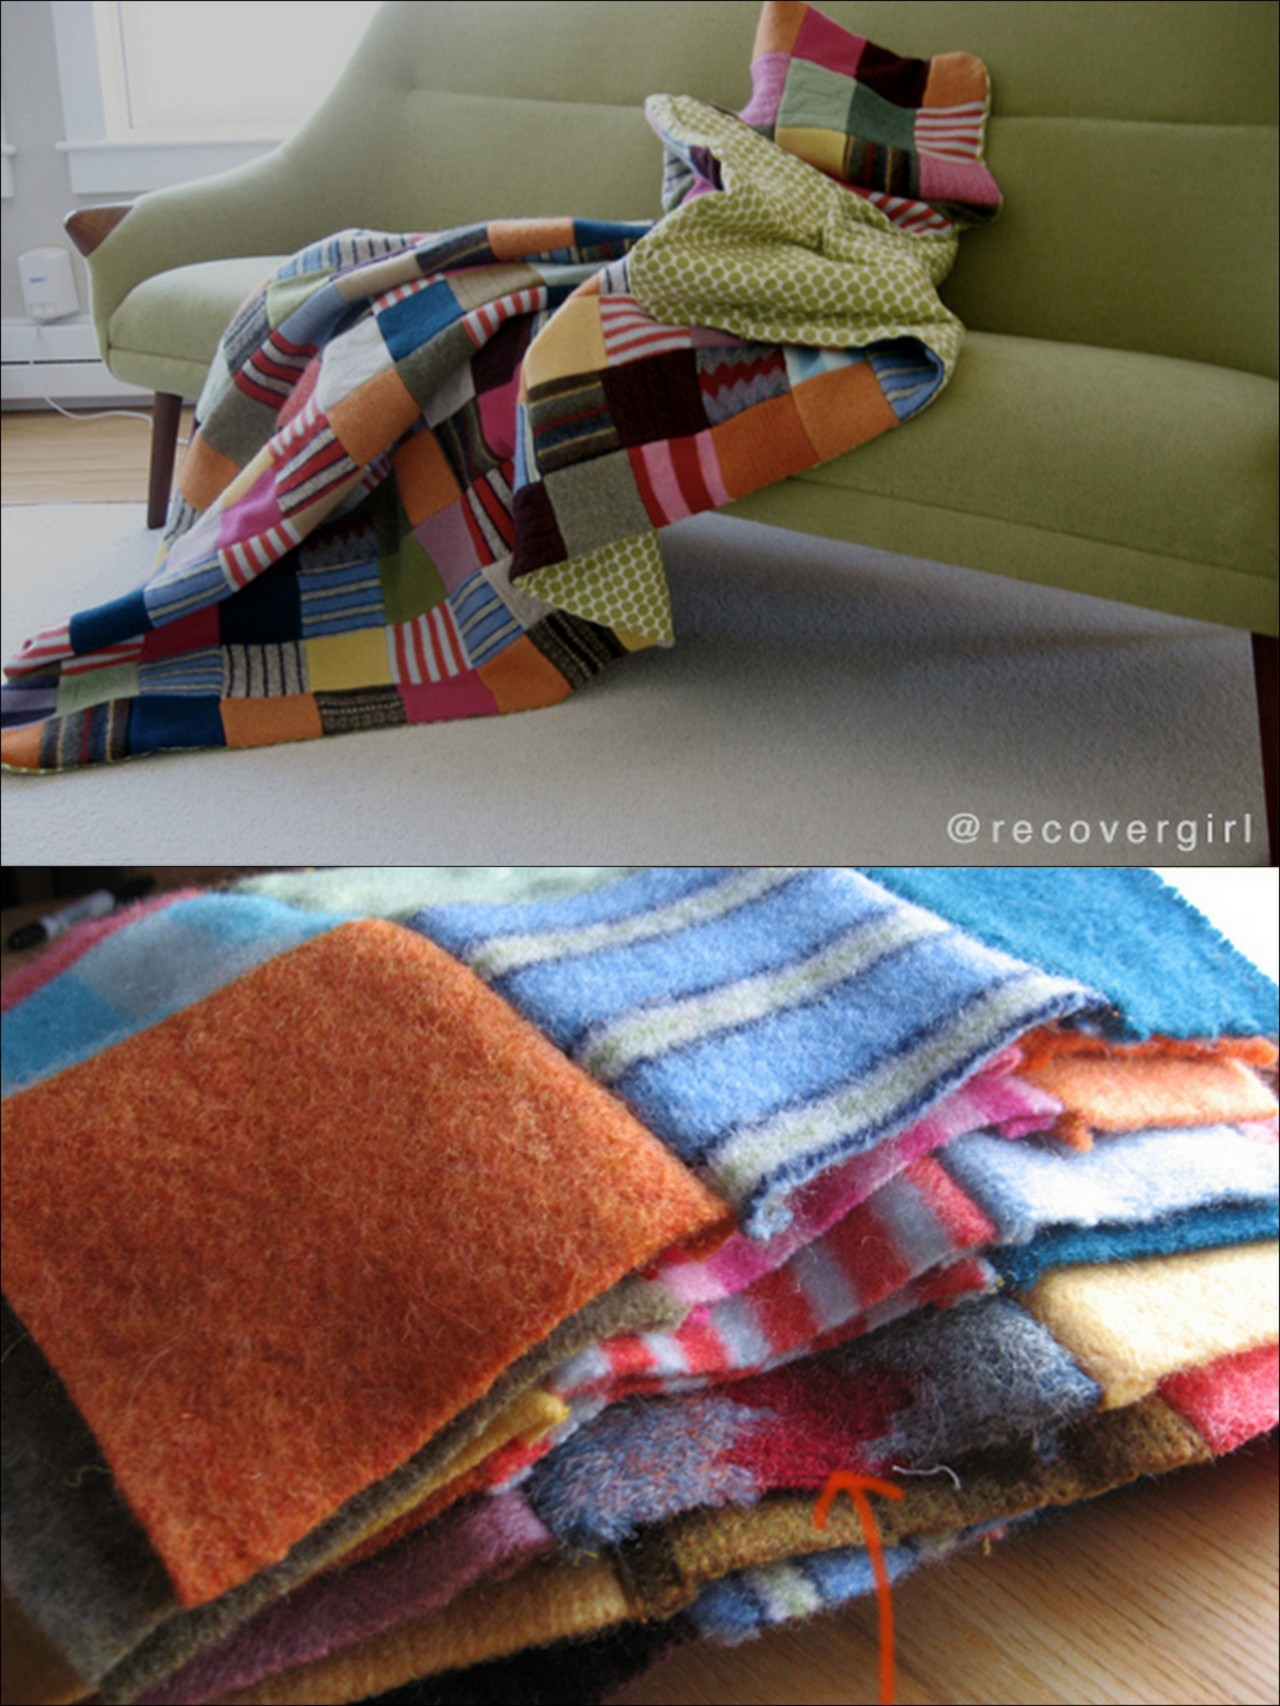 truebluemeandyou:  DIY Felted Sweater Blanket. Easiest instructions I've read so far - still a ton of work, but worth it (I've done 2 quilts using small squares of flannel that have this same type of look and are gorgeous). From recovergirl here. *When I was going to do felting I looked up tutorials on felting in the washing machine. I found several that suggested different ways of doing it (putting the bags in mesh bags etc…) to keep from totally gunking up your machine.